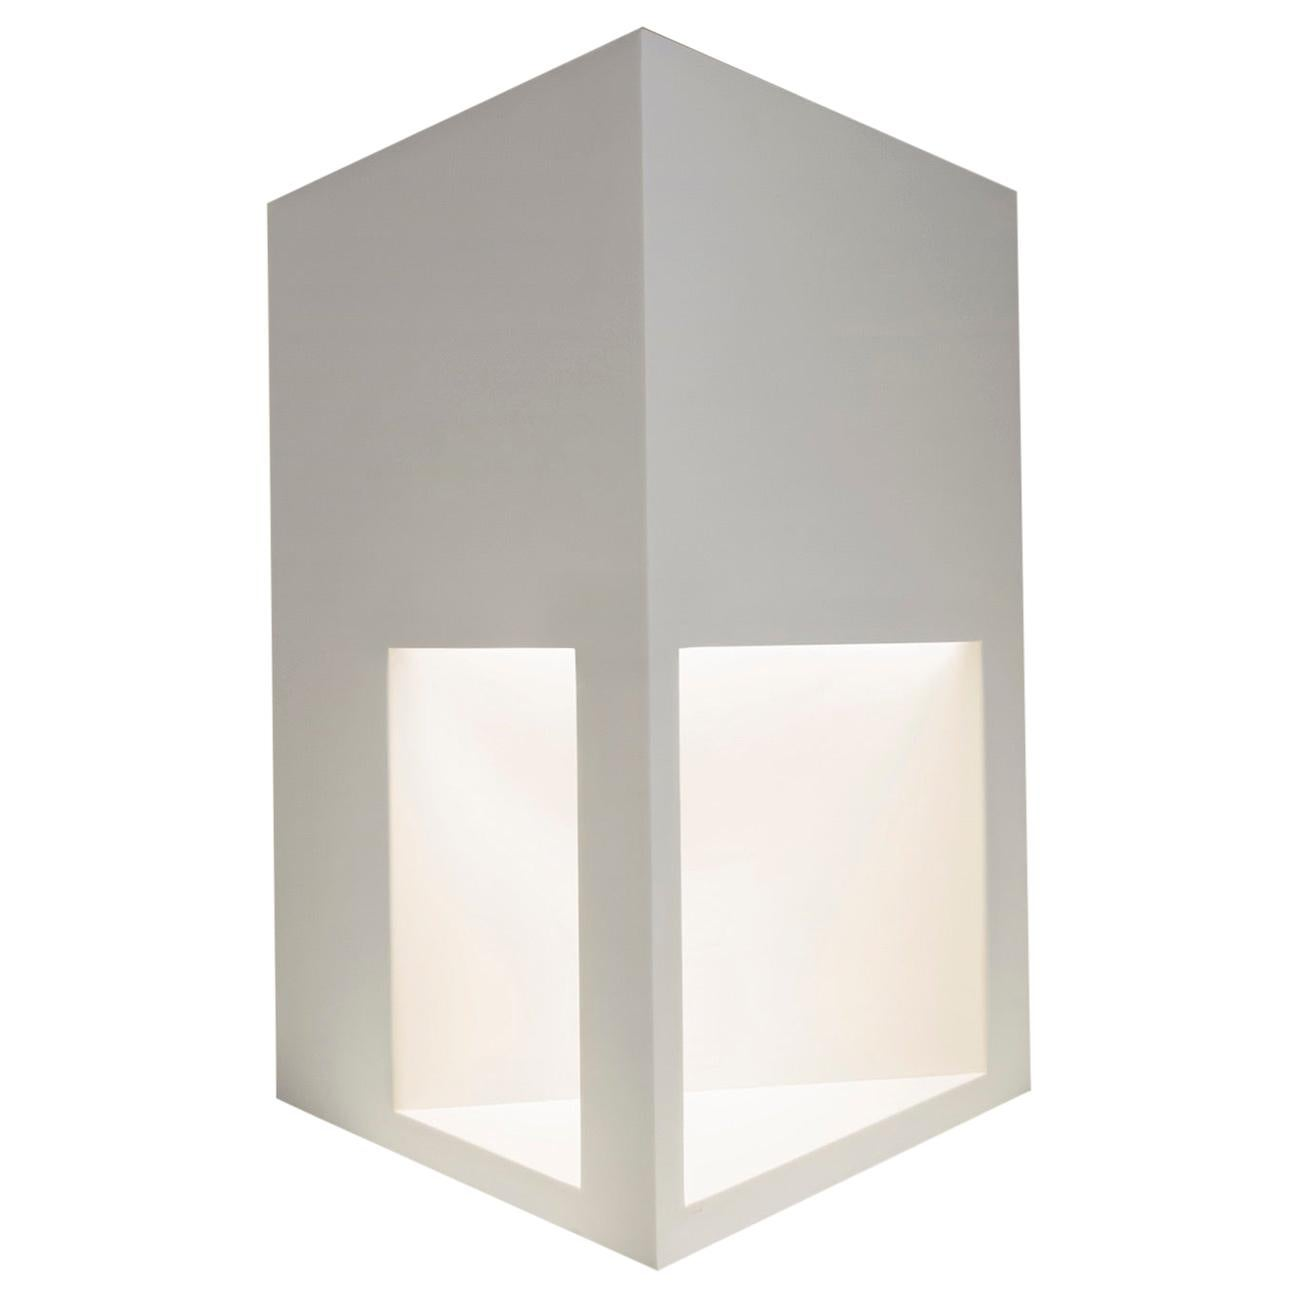 Floor Lamp Sculpture or End Table in White Corian, Ltd. Edition, I